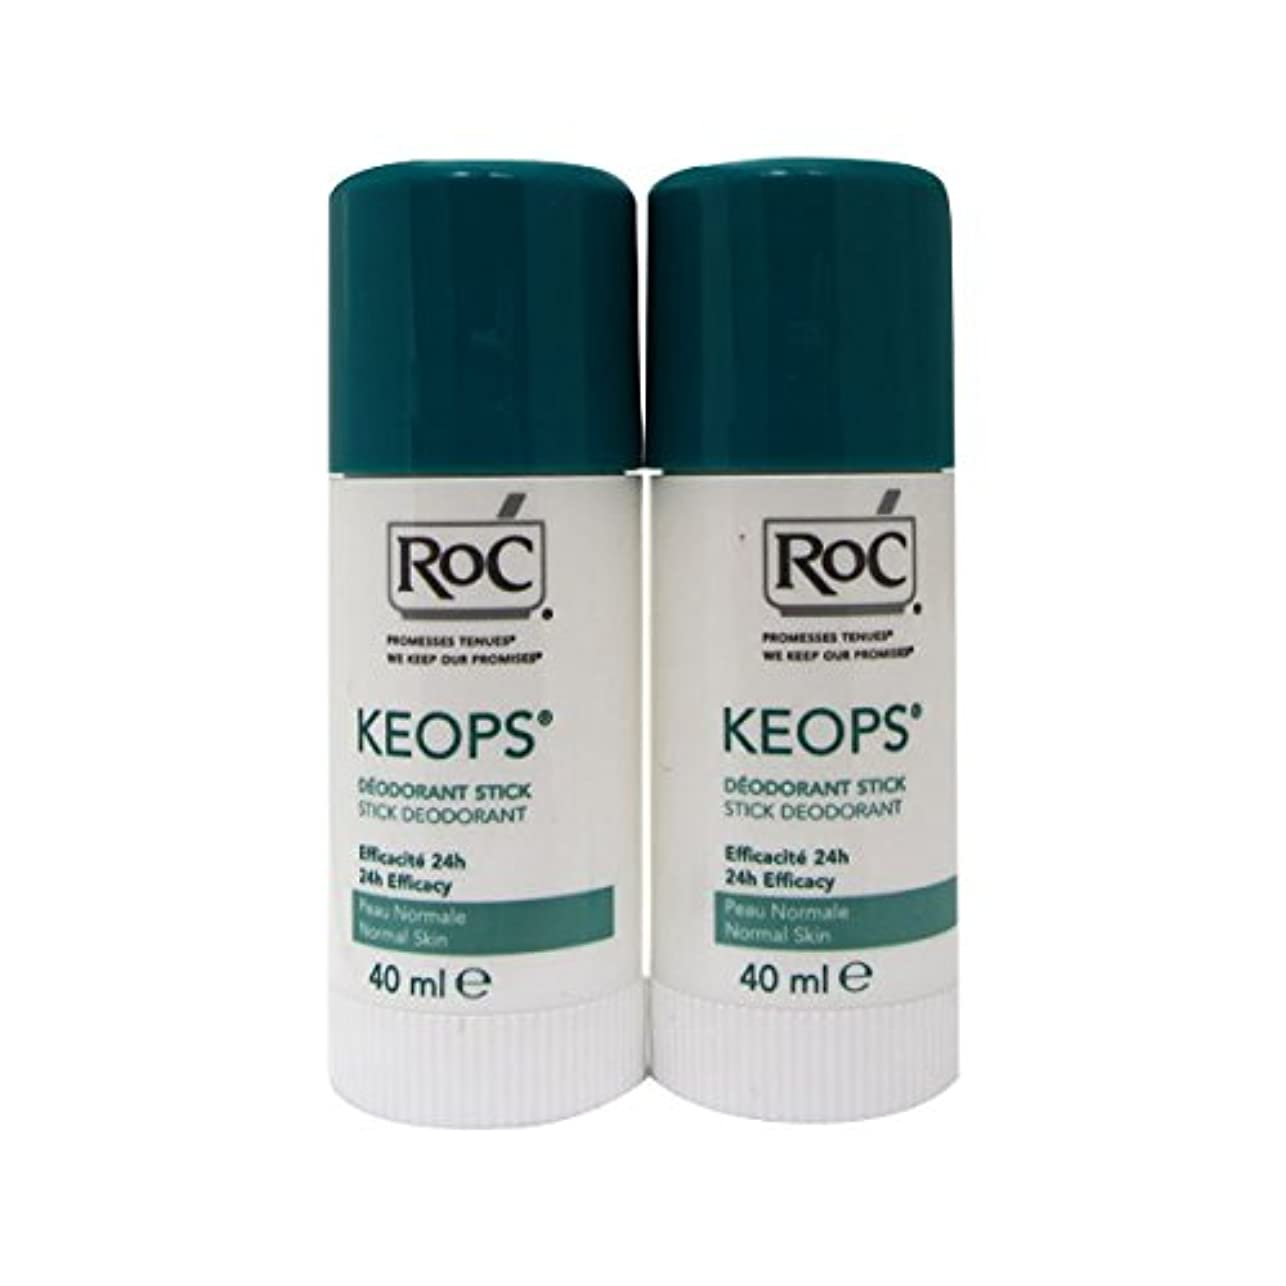 Roc Keops Deodorant Stick Soft Sweating 2x40ml [並行輸入品]